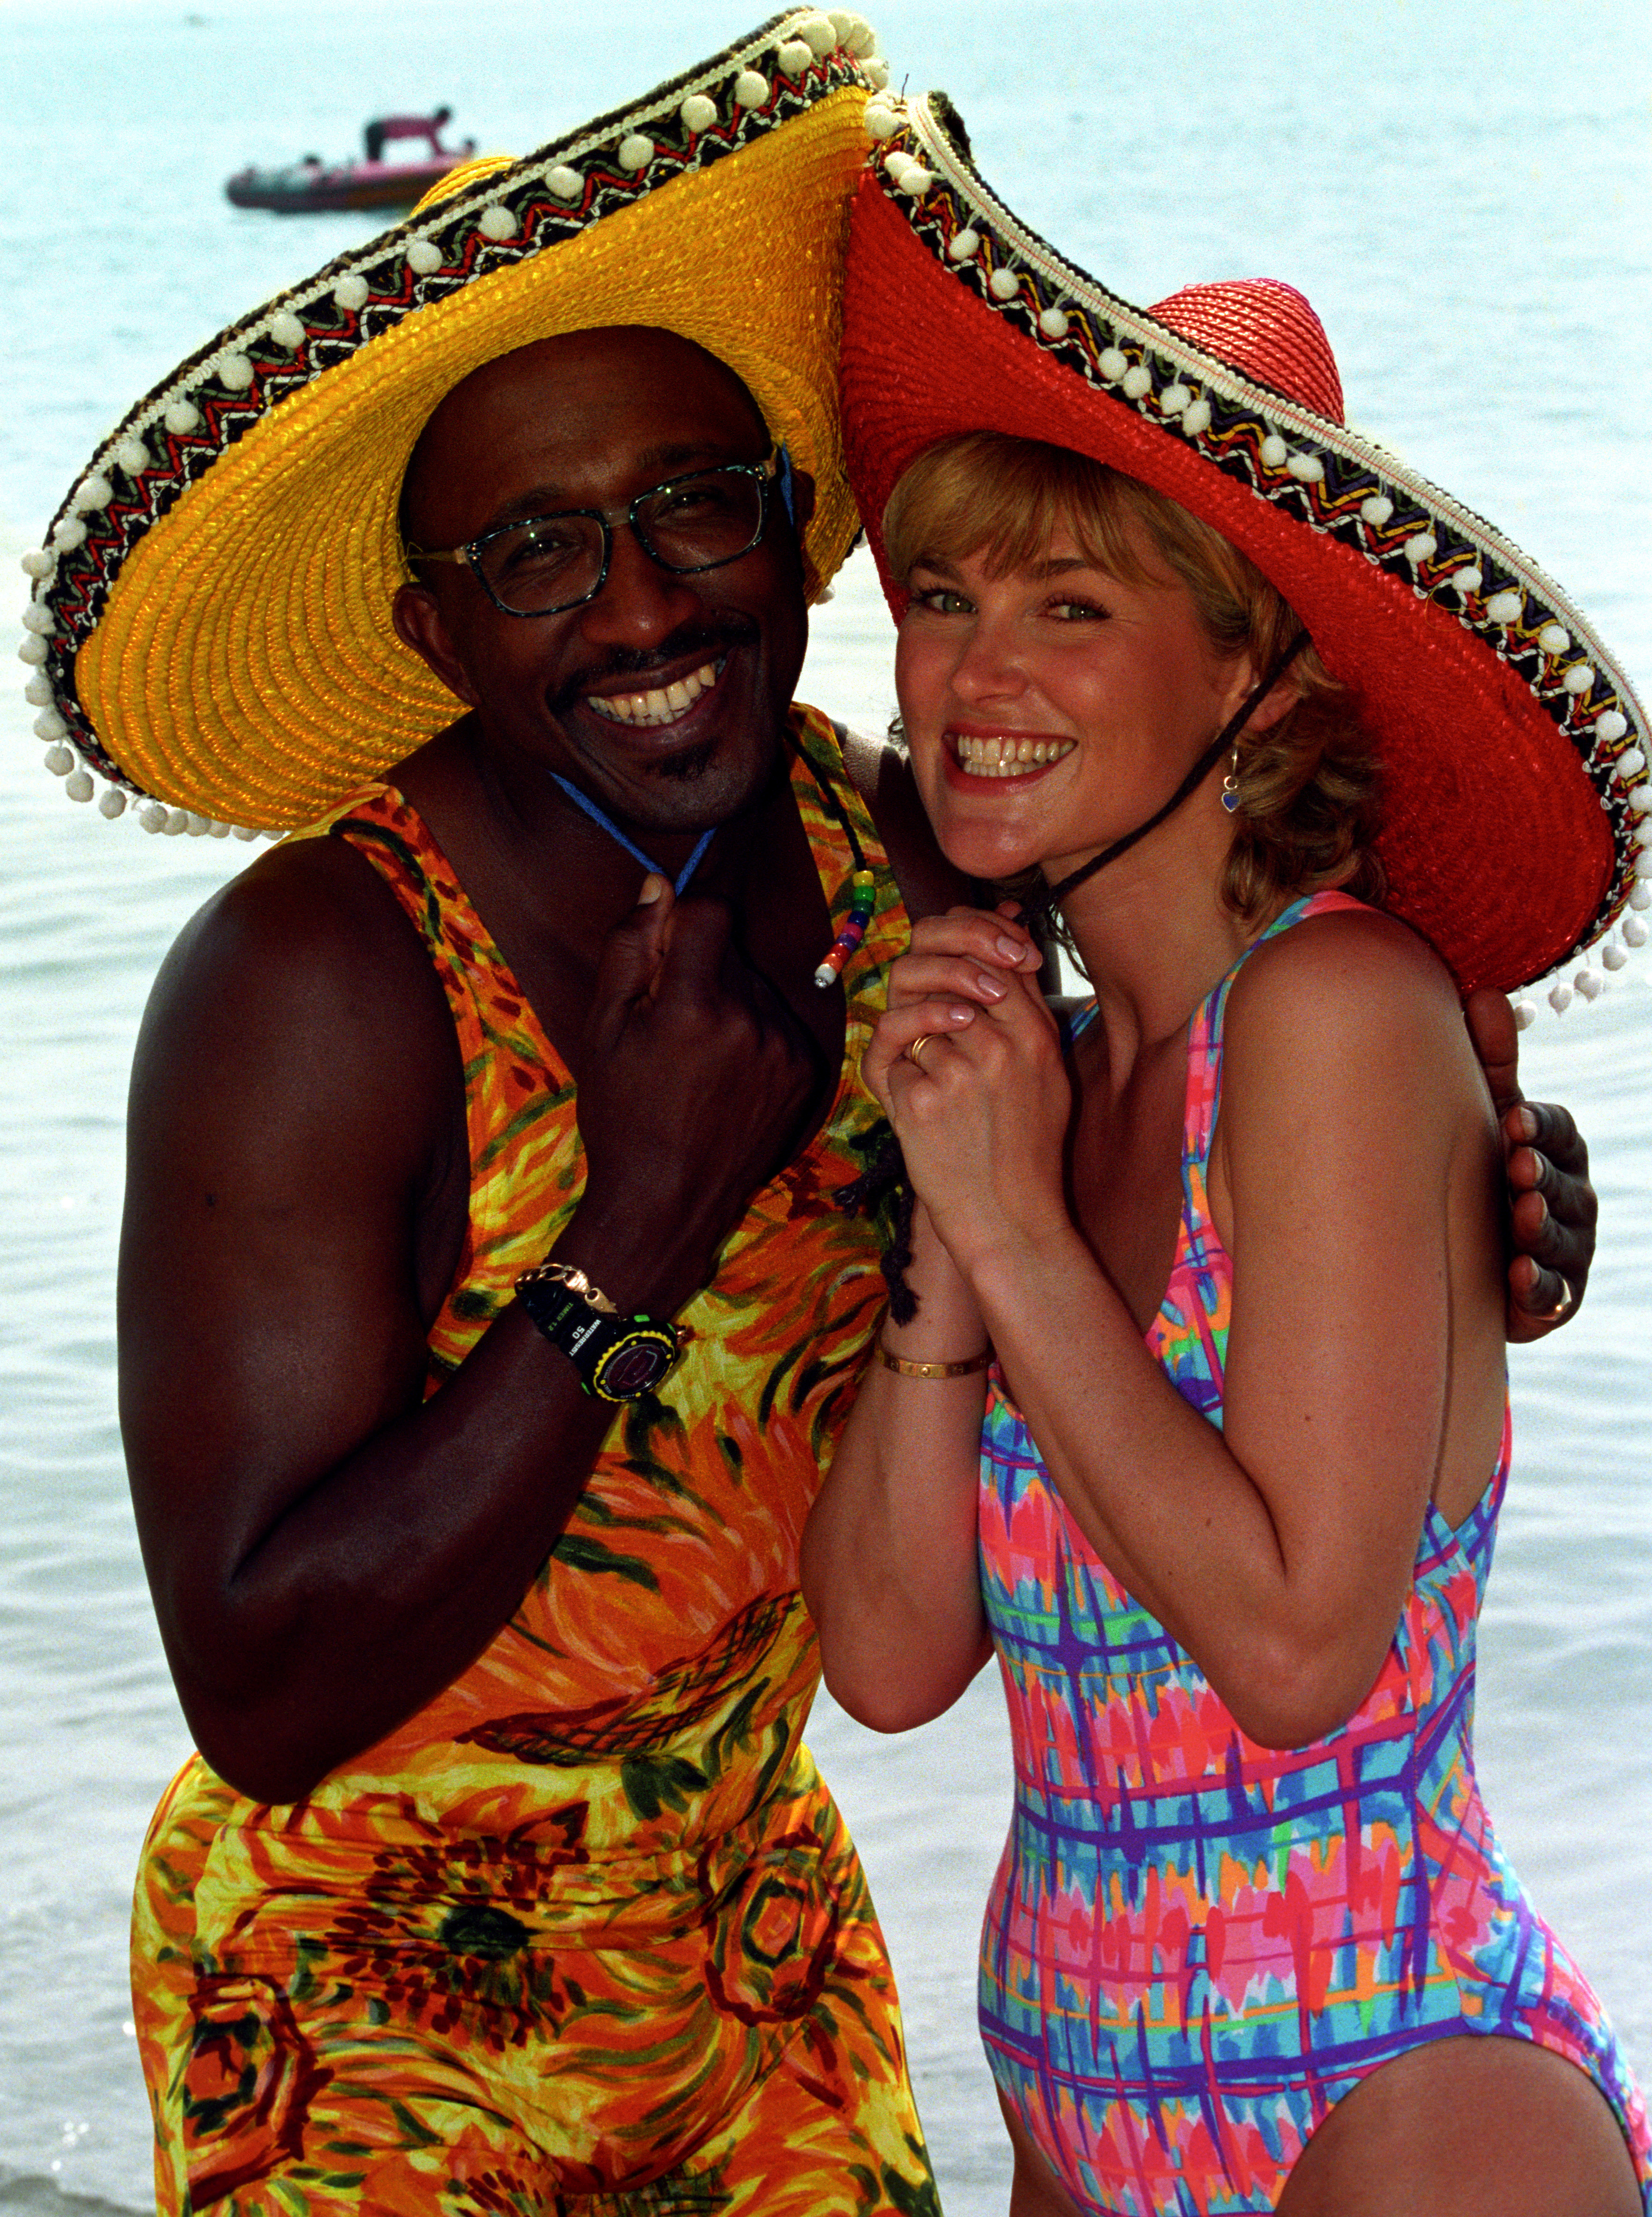 GMTV's Mr Motivator and Anthea Turner getting into the holiday spirit on the beach at Torremolinos in 1994